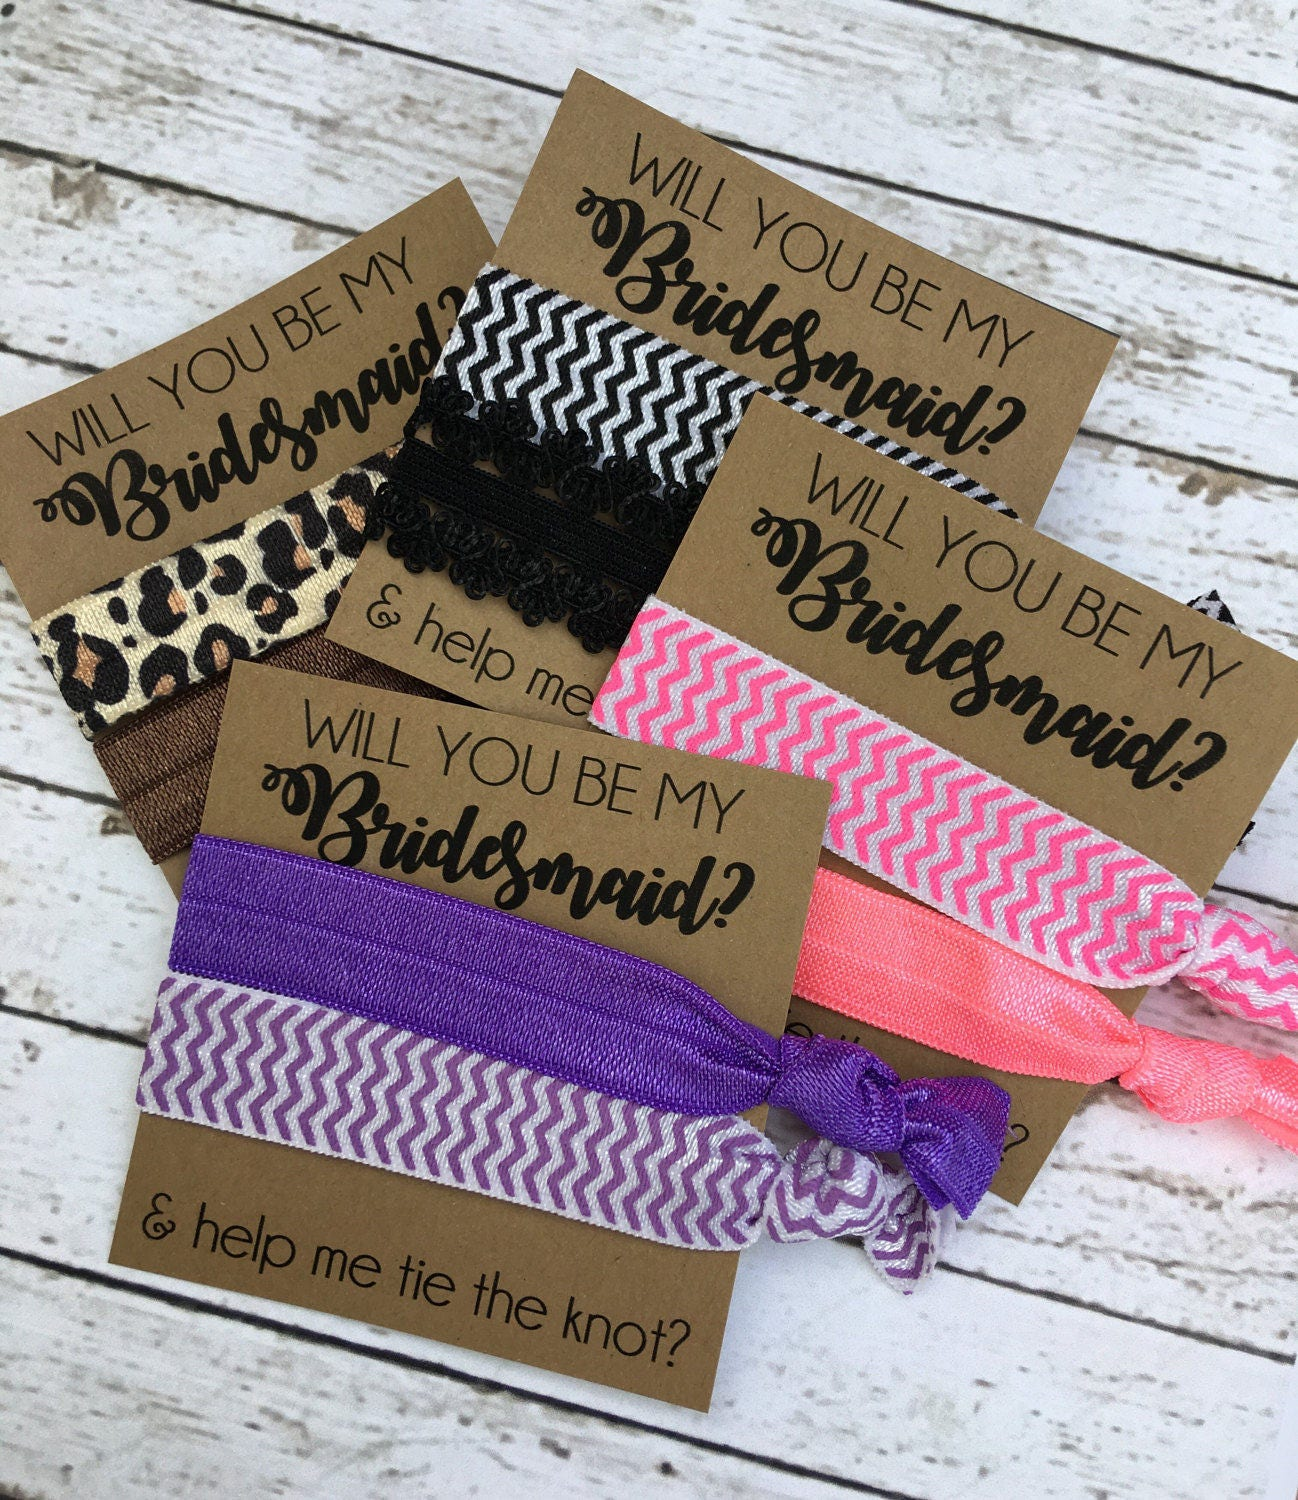 ... tie the knot hair ties - bridesmaid gift - Bridal Party Gifts and  boxes. gallery photo ... db50d9d7ee8